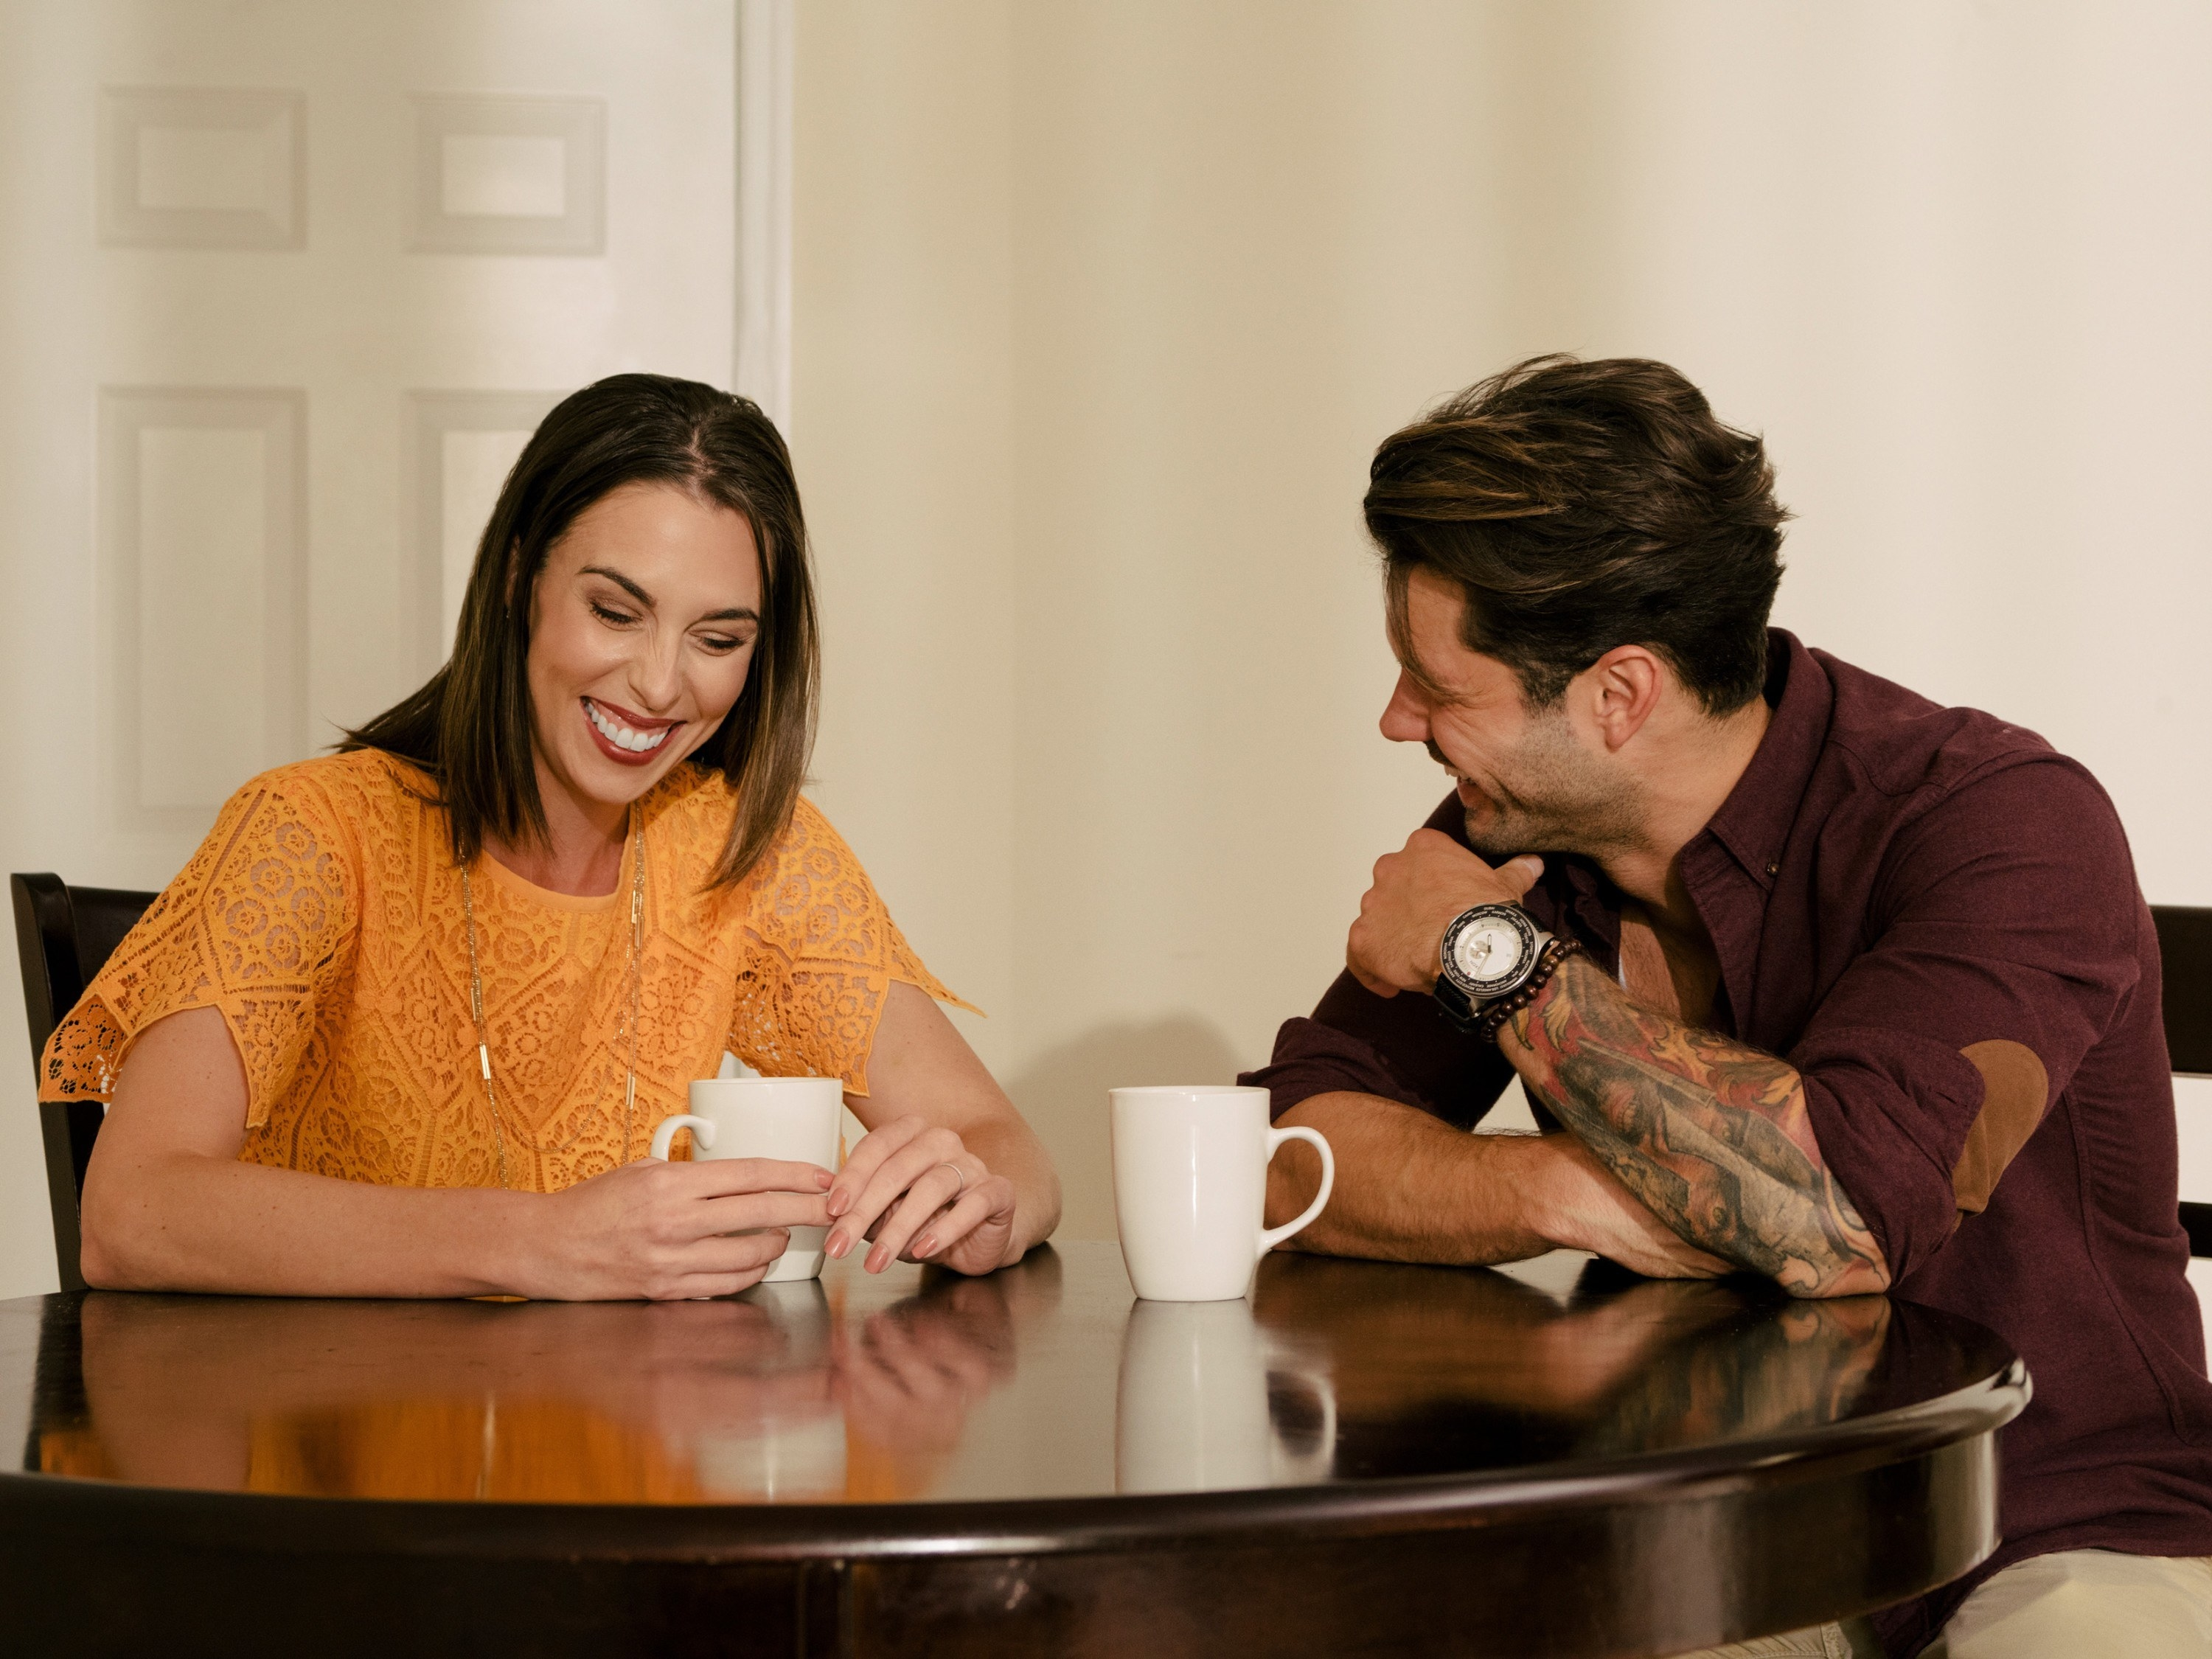 MARRIED AT FIRST SIGHT, (from left): Mindy Shiben, Zach Justice, (Season 10, premiered Jan. 1, 2020)